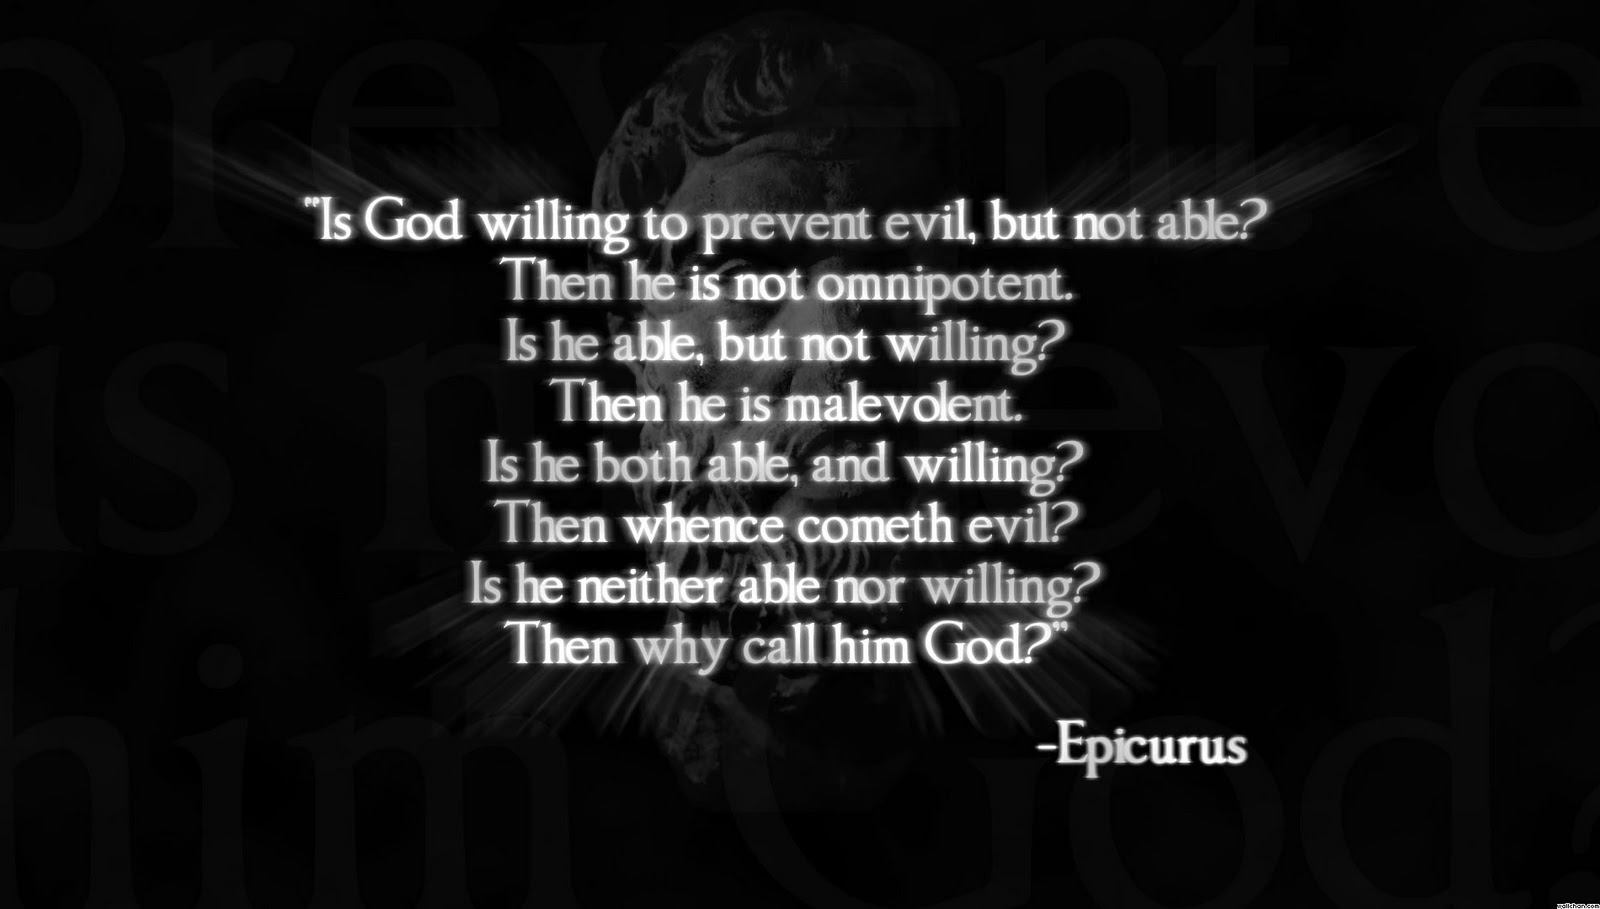 epicurus vs epictetus Post 2: epicurus vs epictetus date: fri, 2 jul 2004 14:52:07 epicurus'  ethical theory stems from his belief that nothing is created out of.